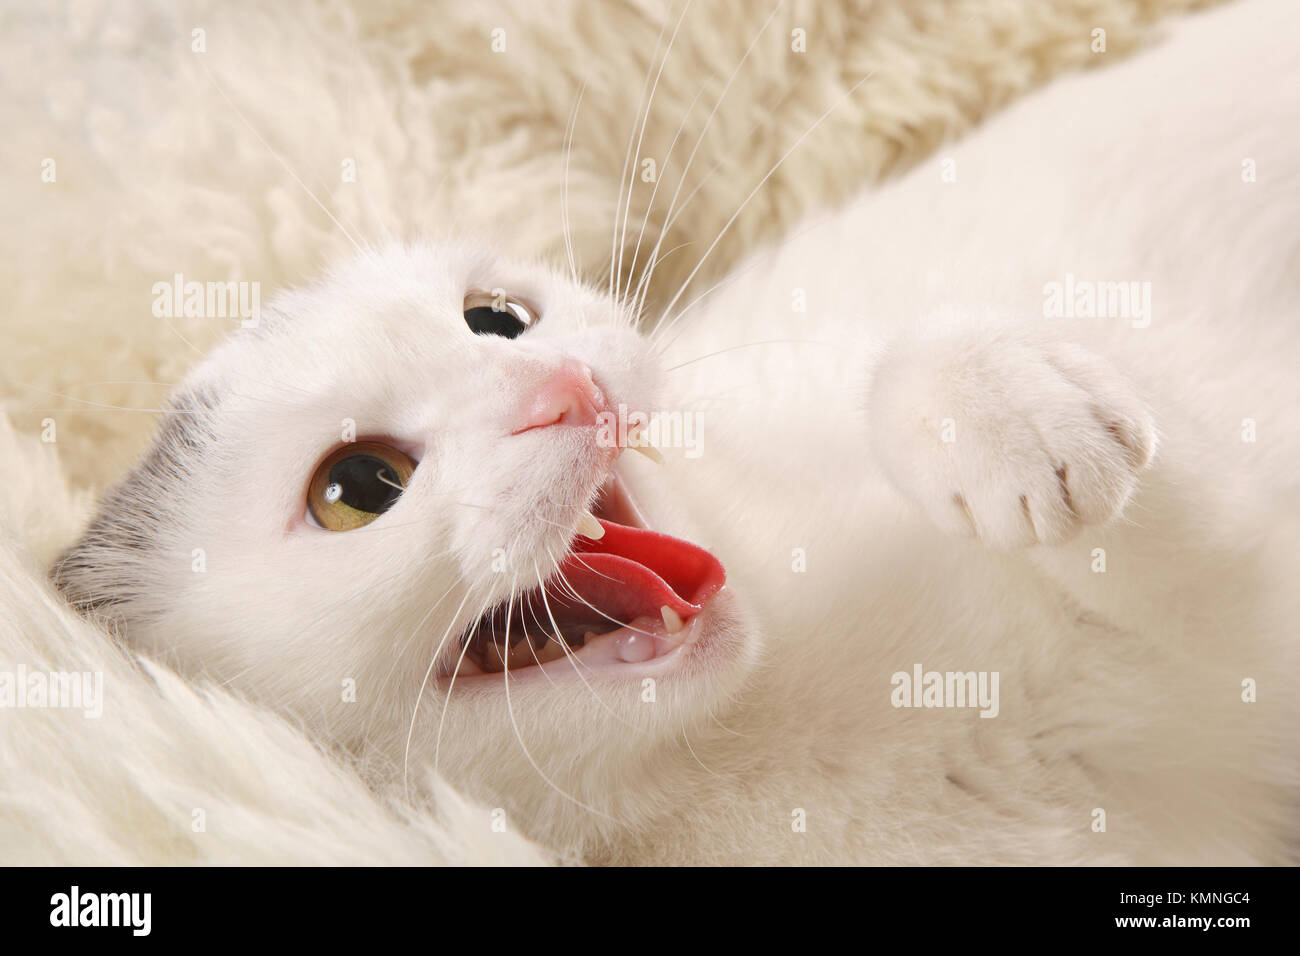 angry white cat on a white sheepskin - Stock Image